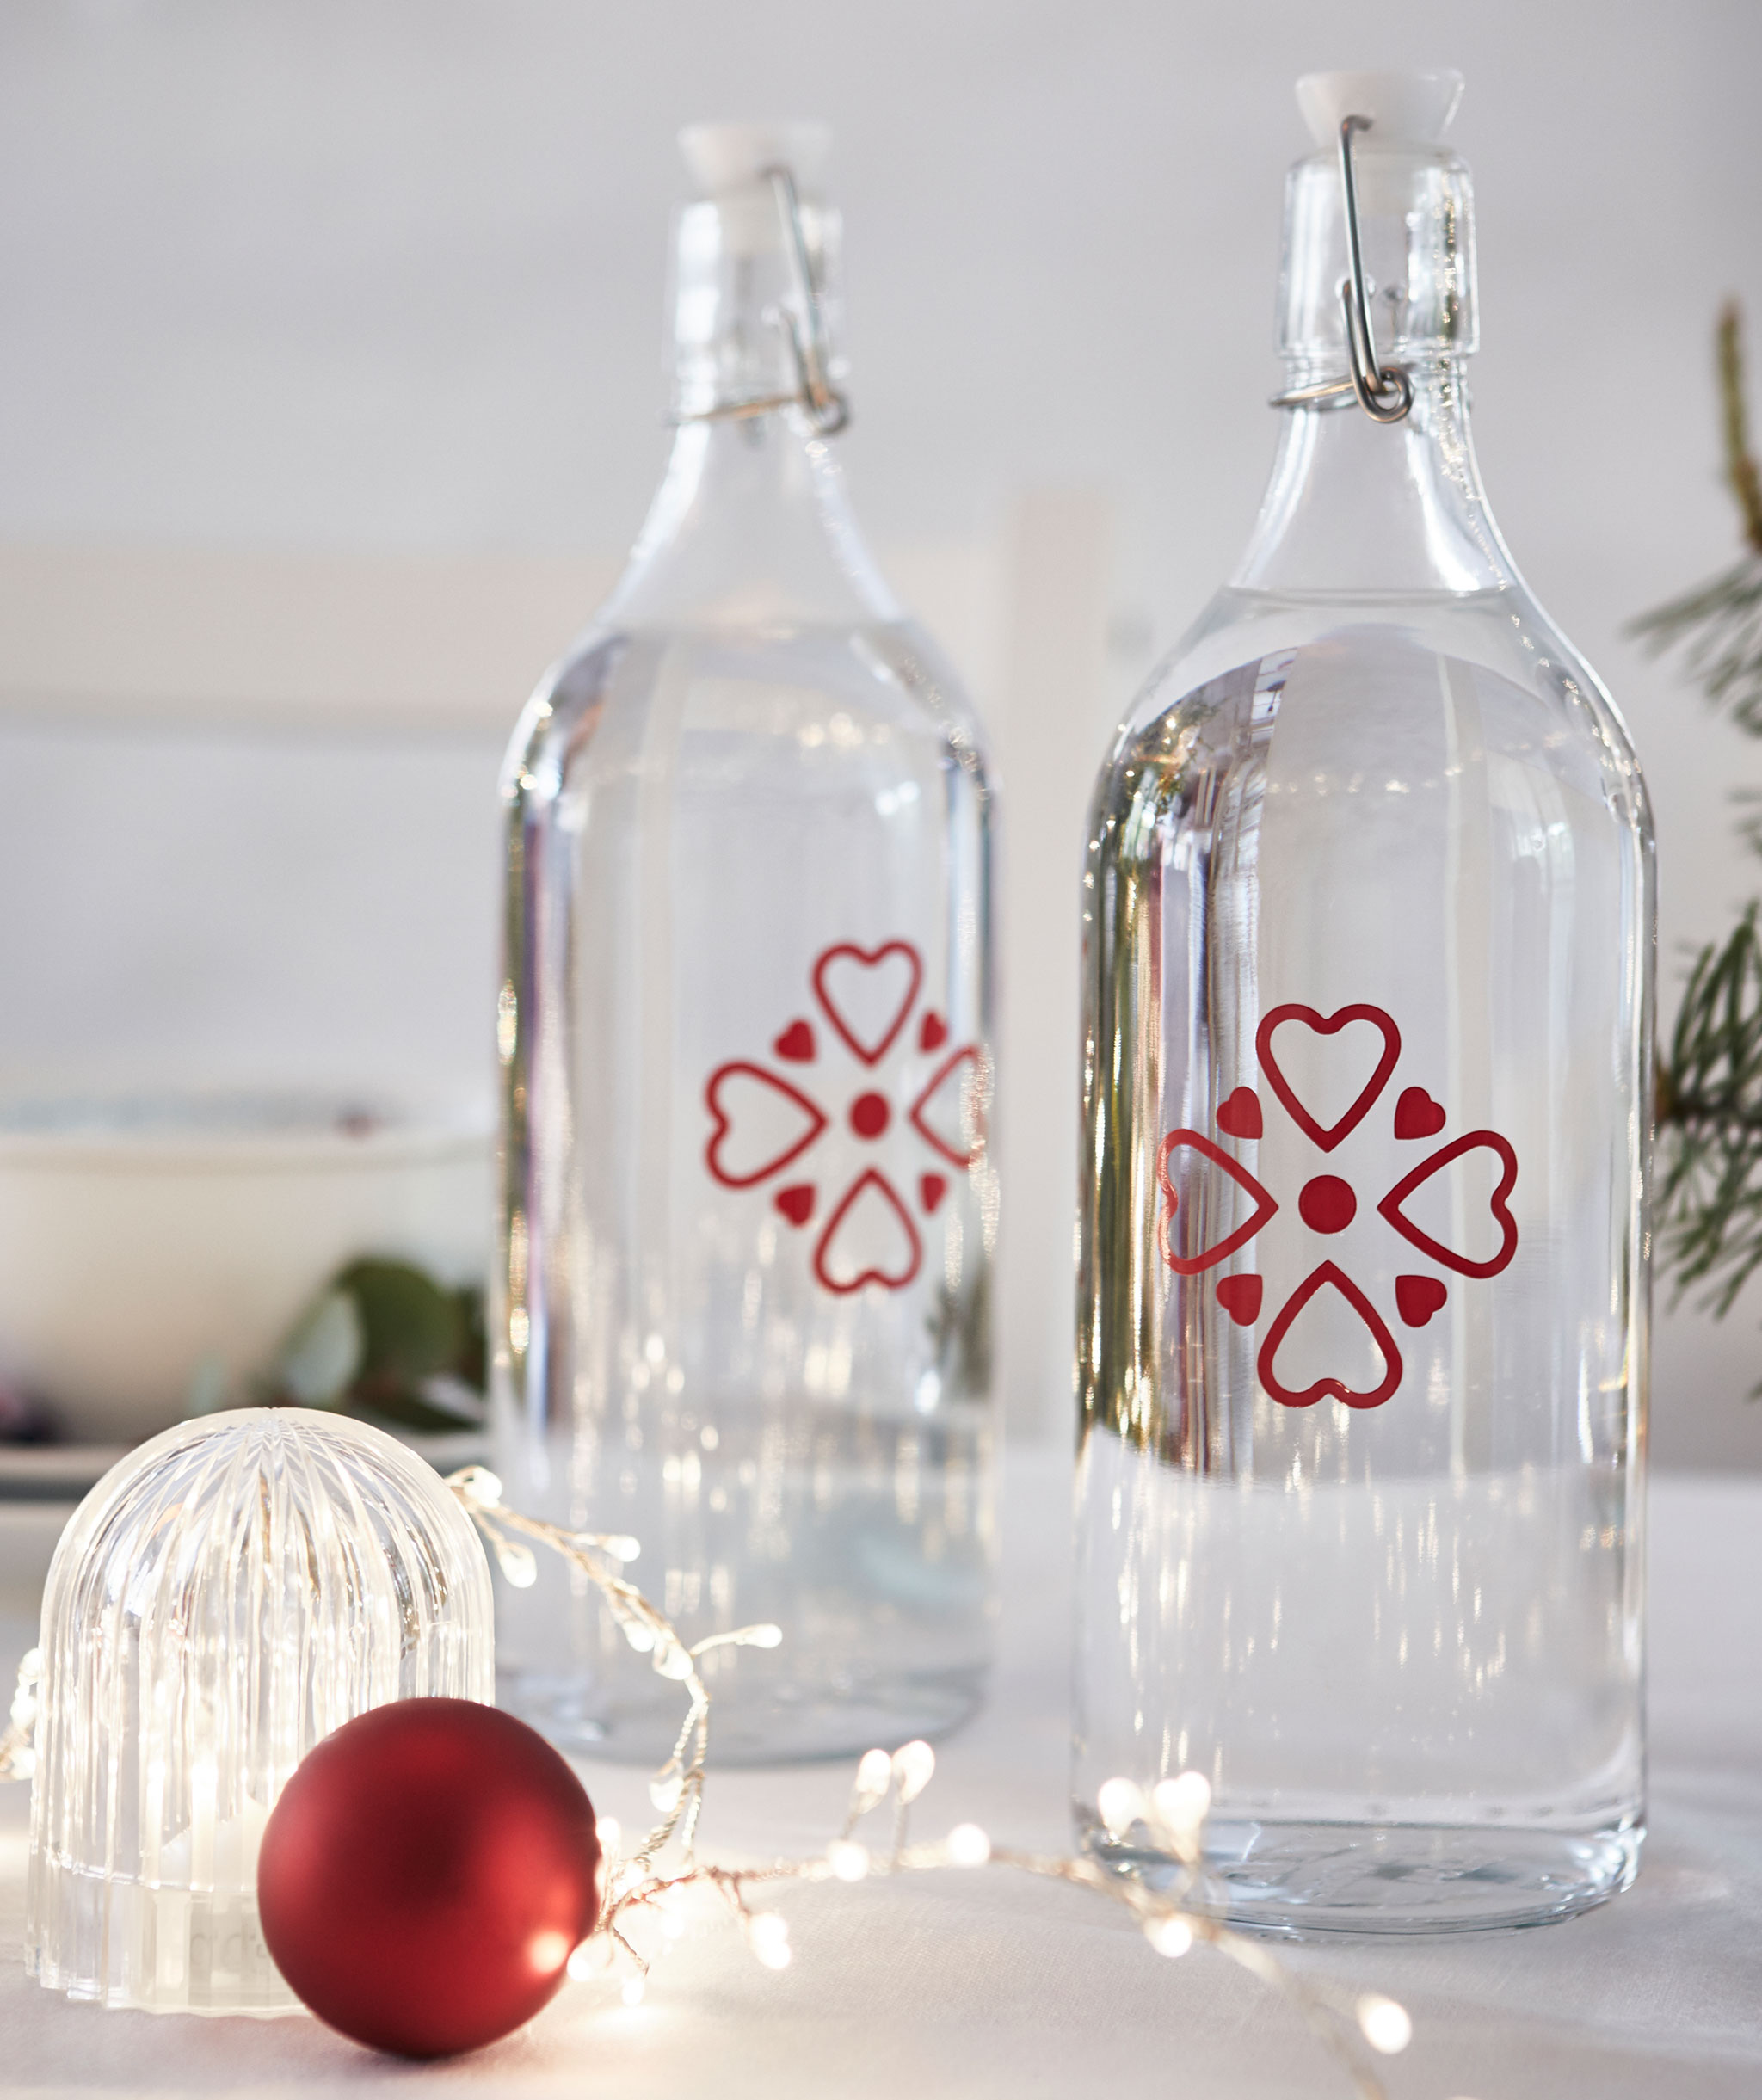 Two glass bottles, clear with small red decorations, standing on a table next to a decorative LED light and lighting chain.